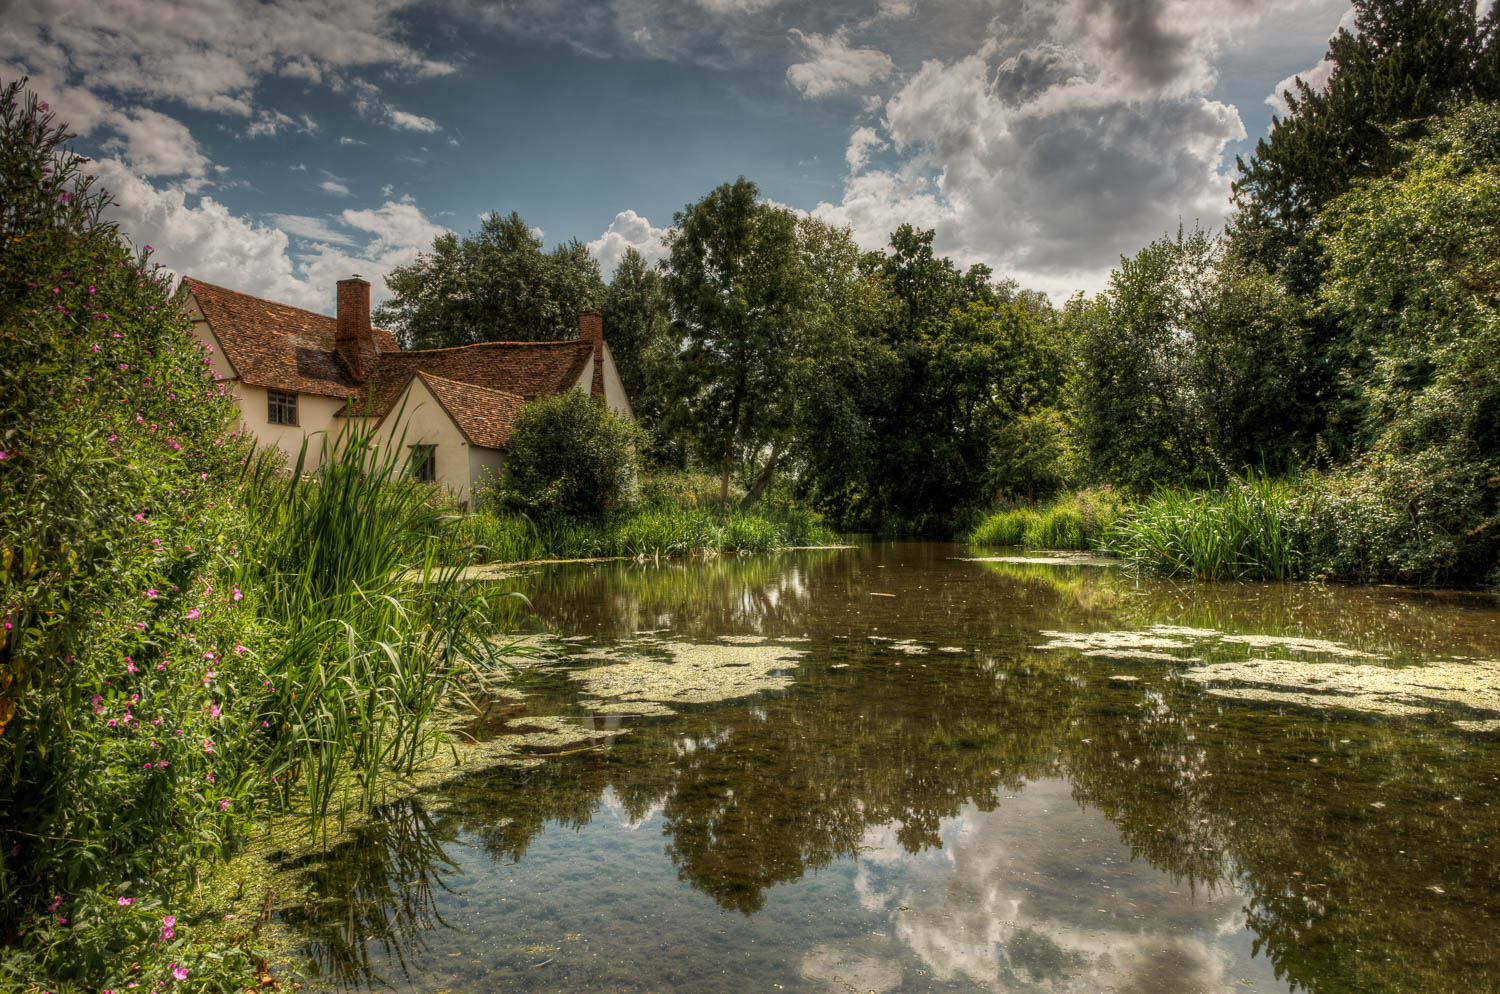 By Flatford Mill